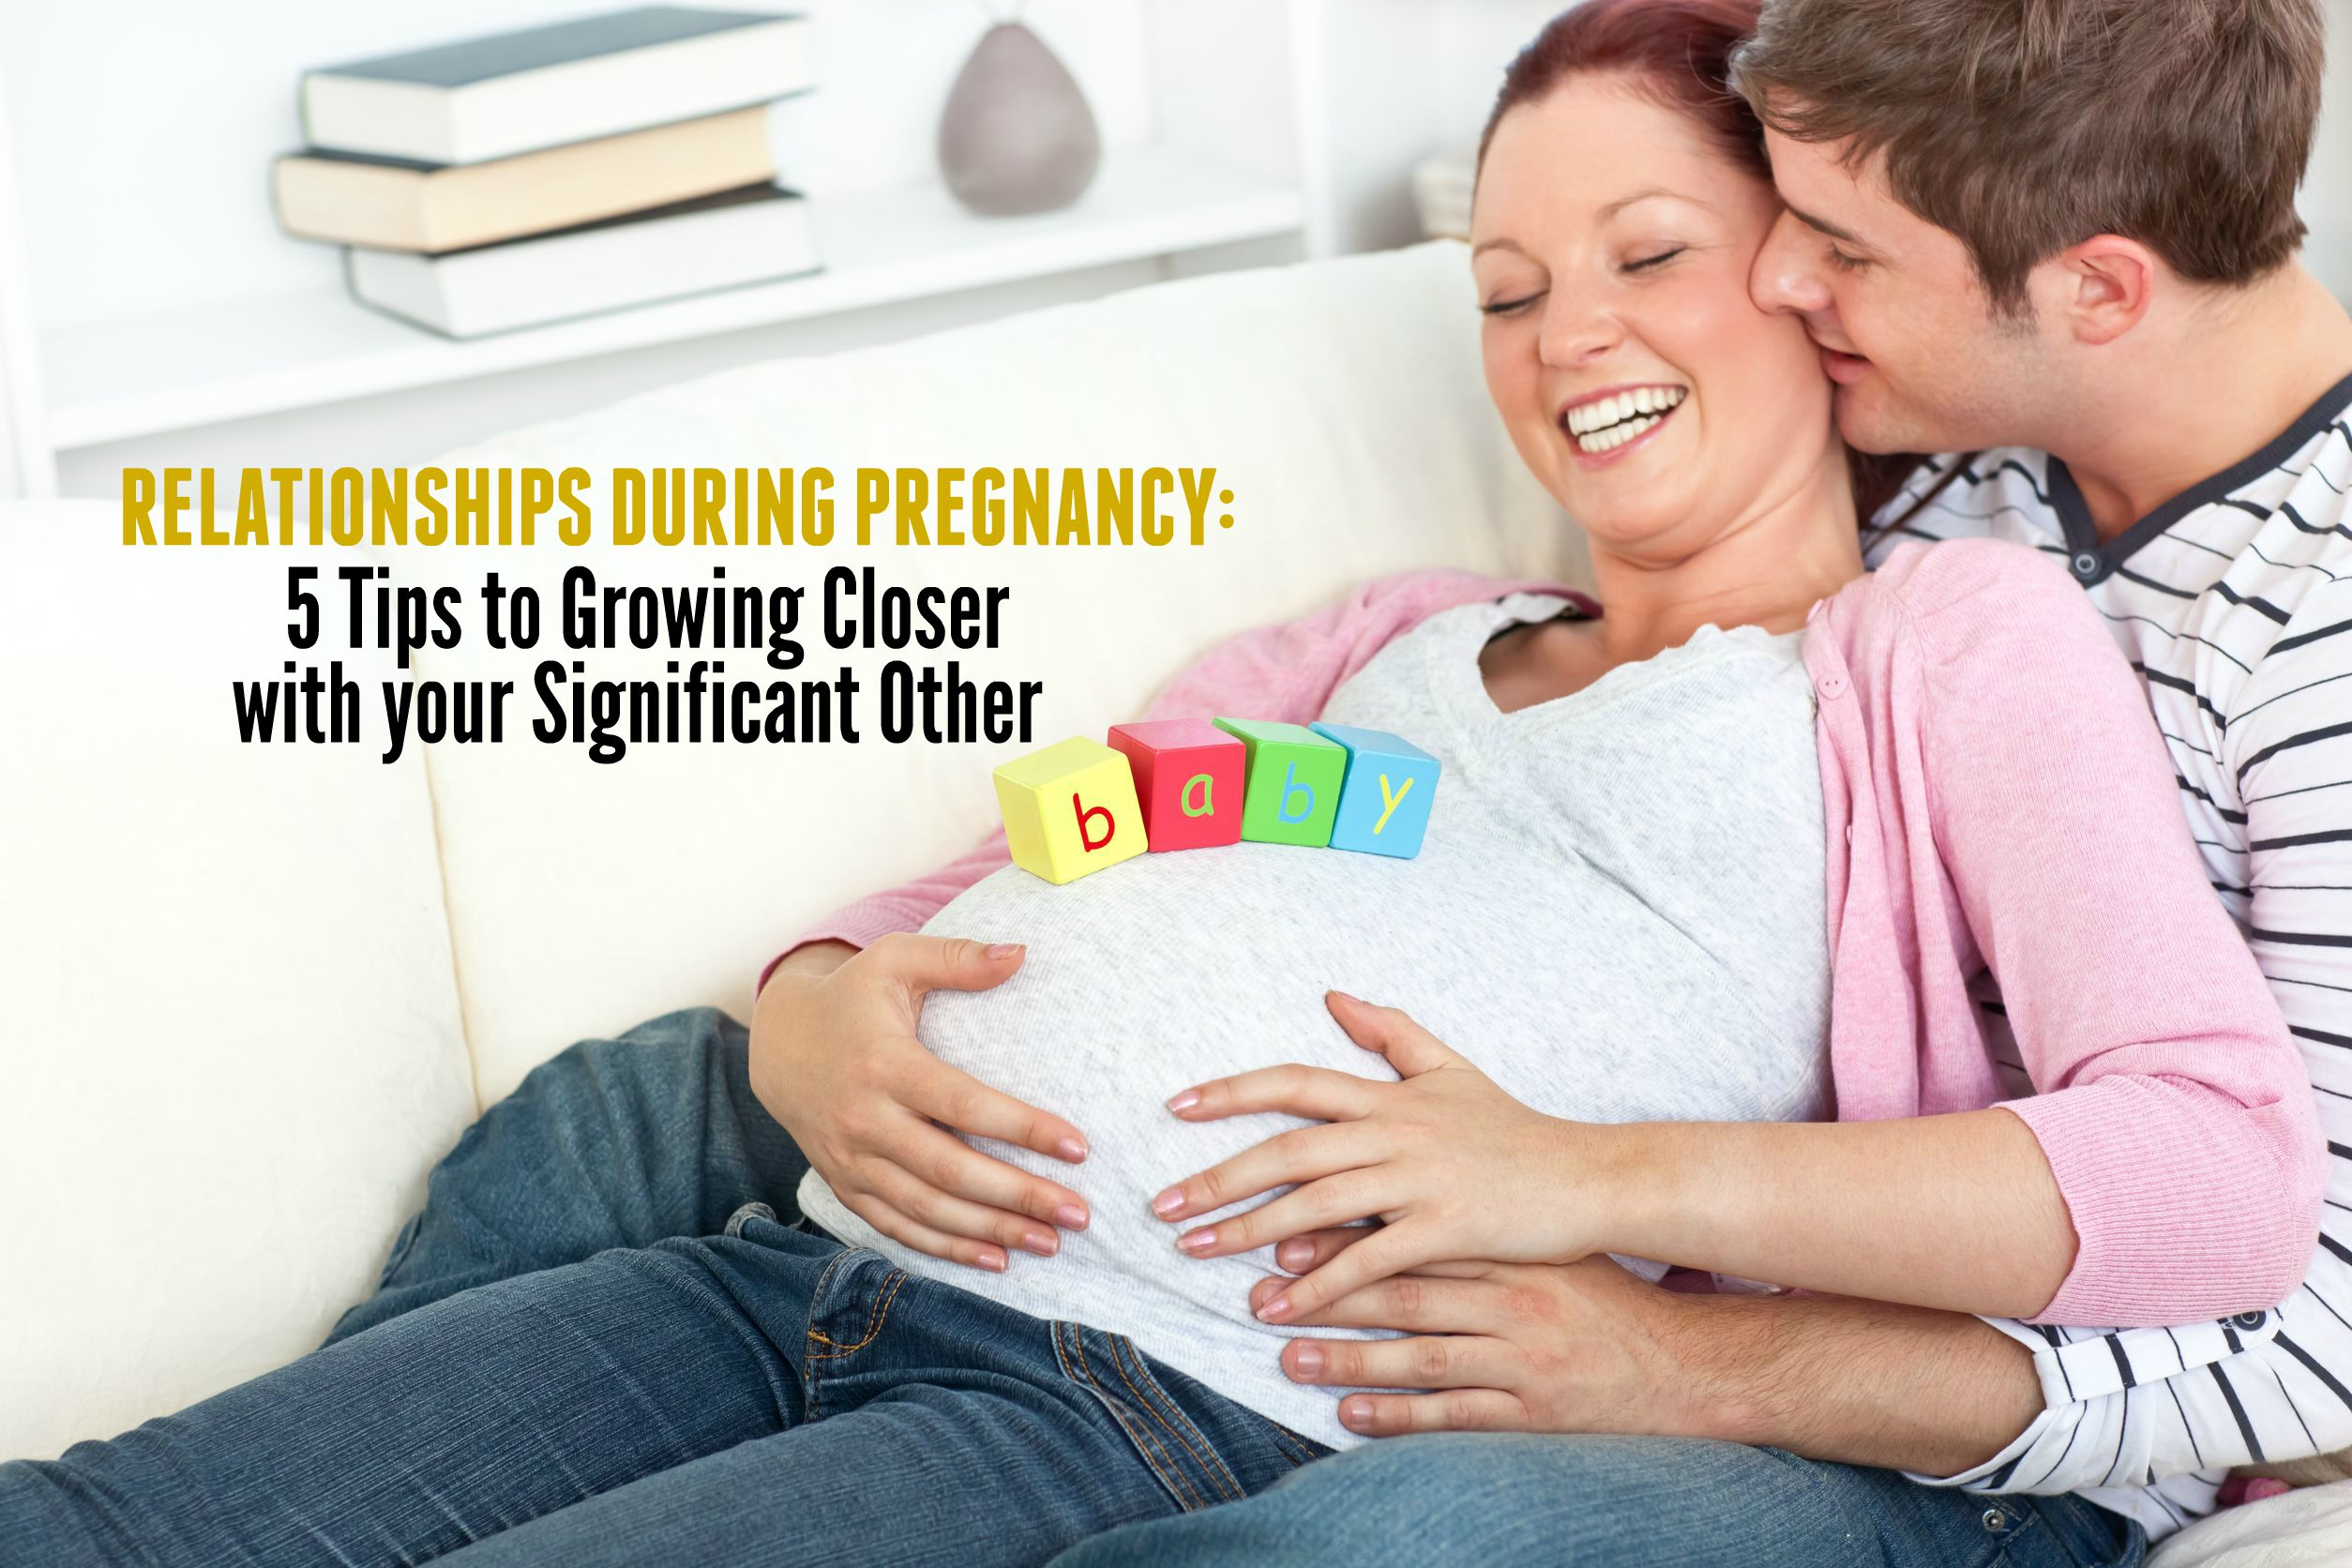 dating during pregnancy while pregnant If you're single and pregnant, here are 12 helpful tips for coping alone during pregnancy.